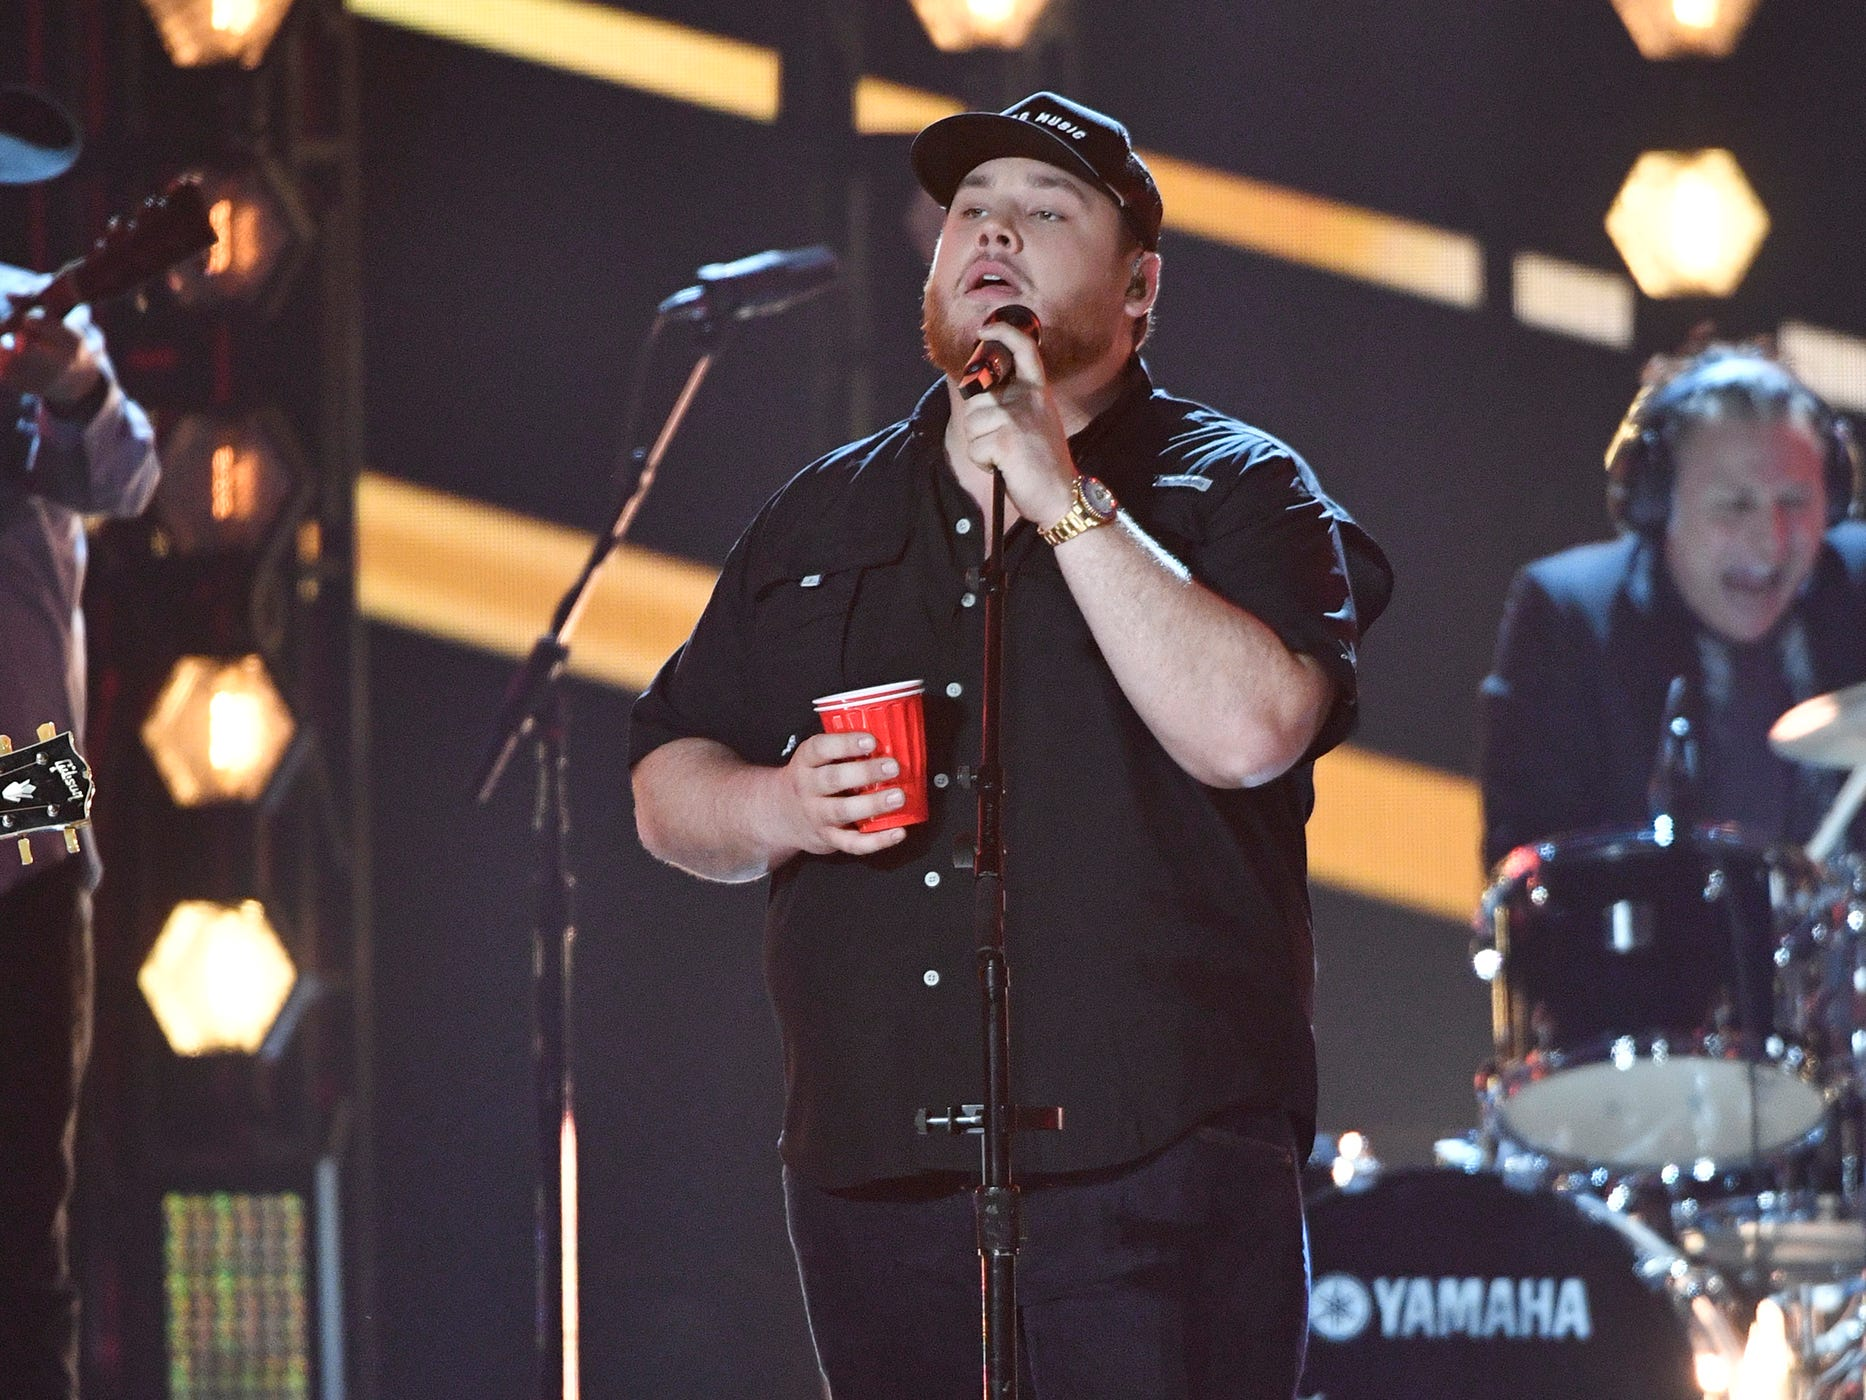 Luke Combs performs during the 54TH Academy of Country Music Awards Sunday, April 7, 2019, in Las Vegas, Nev.